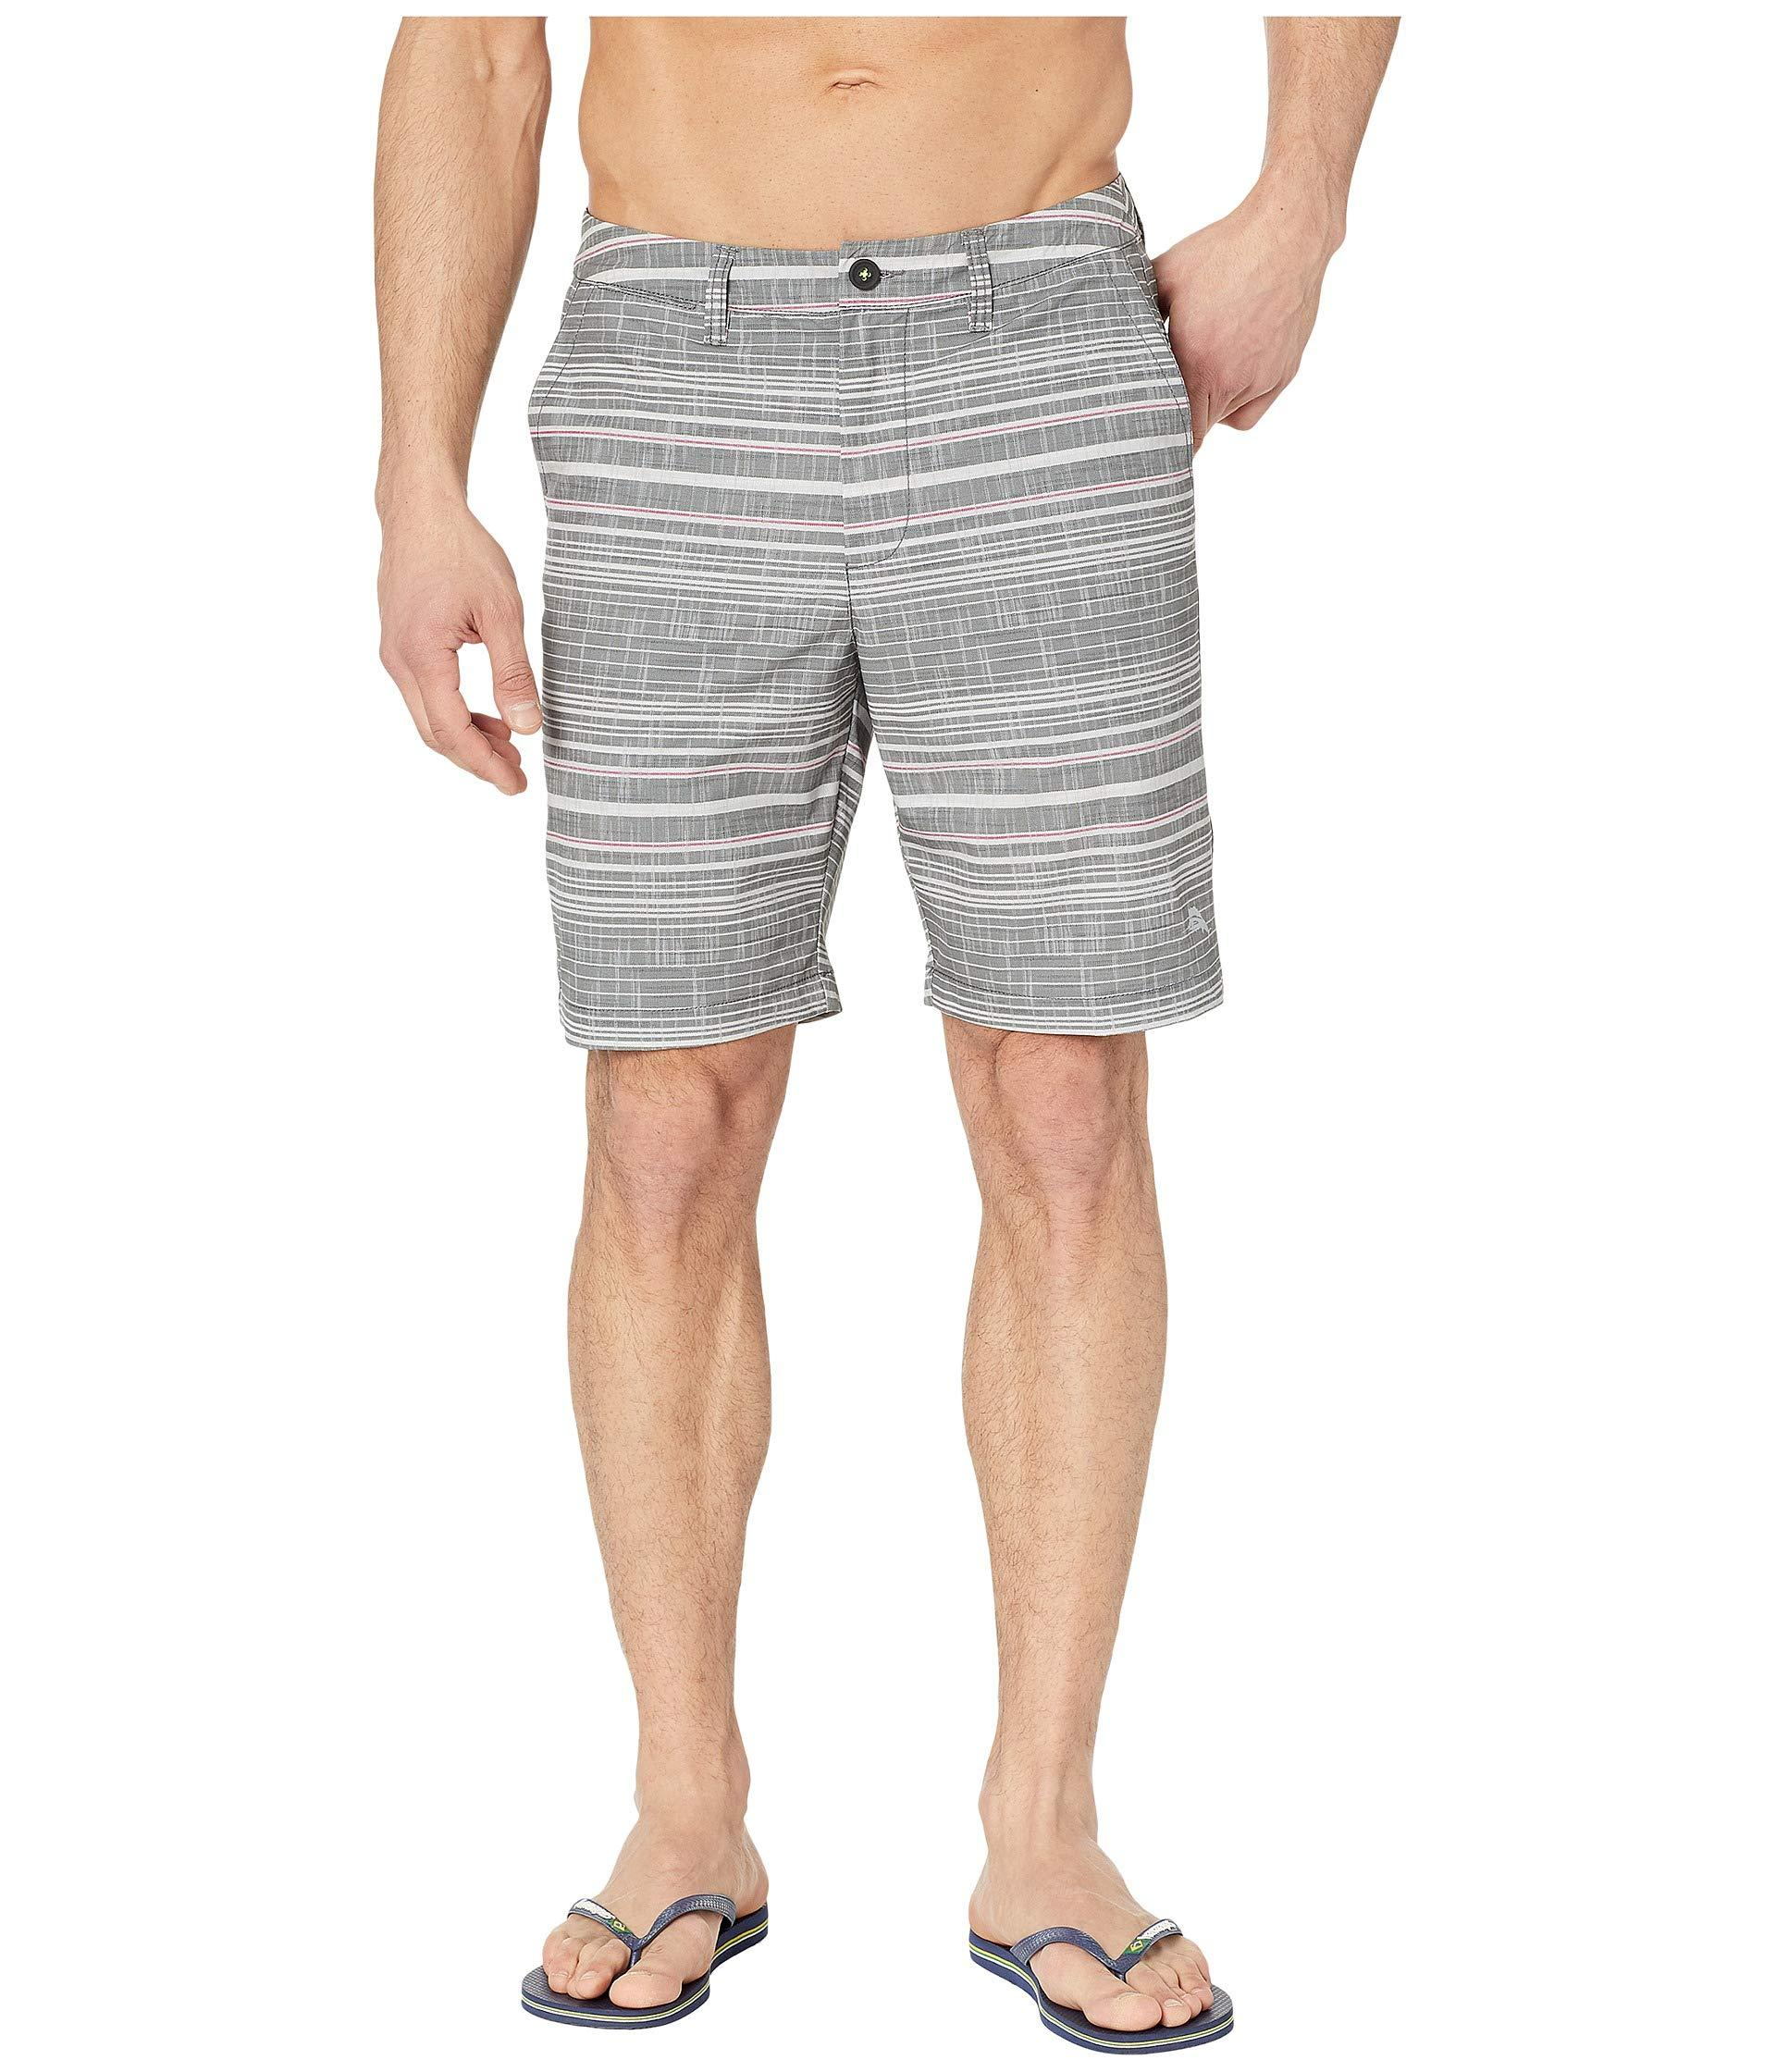 863c57054fa5d0 Lyst - Tommy Bahama Cayman Sarzana Stripe Swim Trunk (black) Men's ...